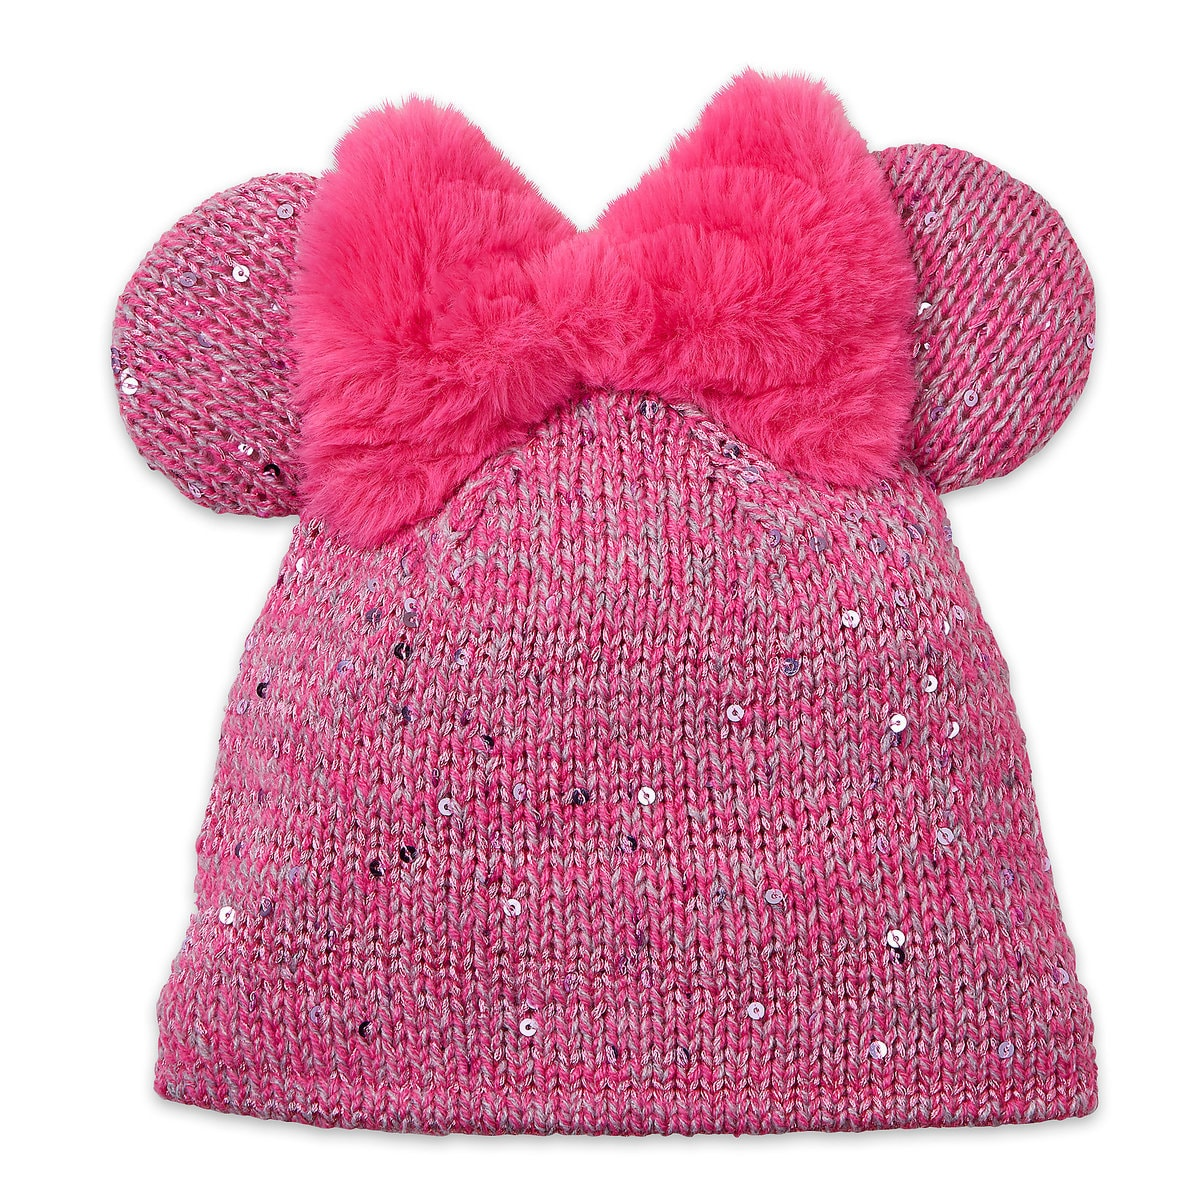 0ca88ae1742f45 Product Image of Minnie Mouse Knit Hat for Kids # 1